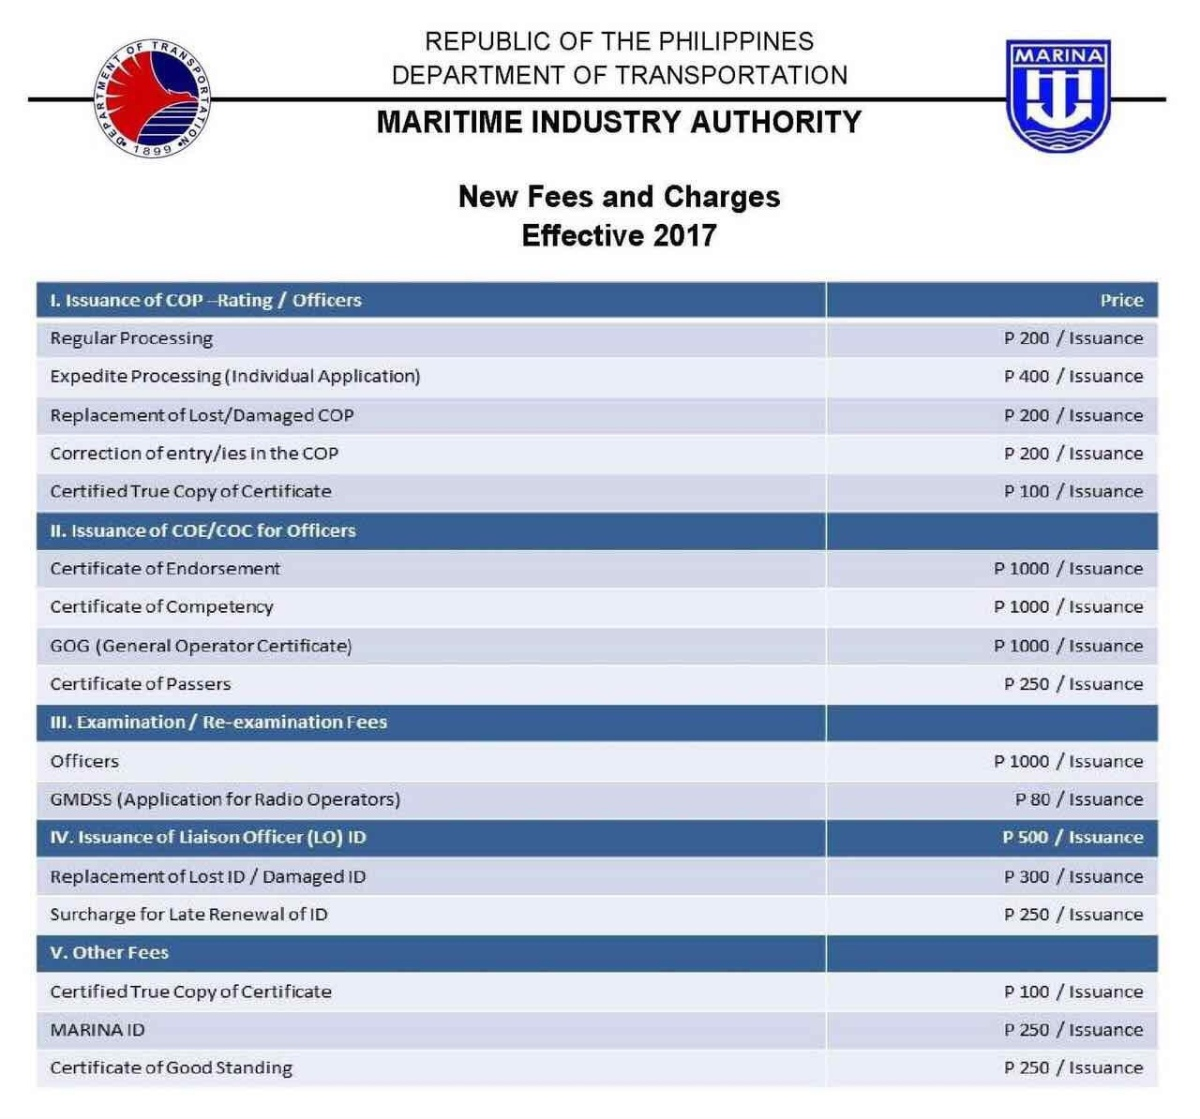 CERTIFICATION, EXAMINATION & OTHER RELATED FEES UNDER STCW